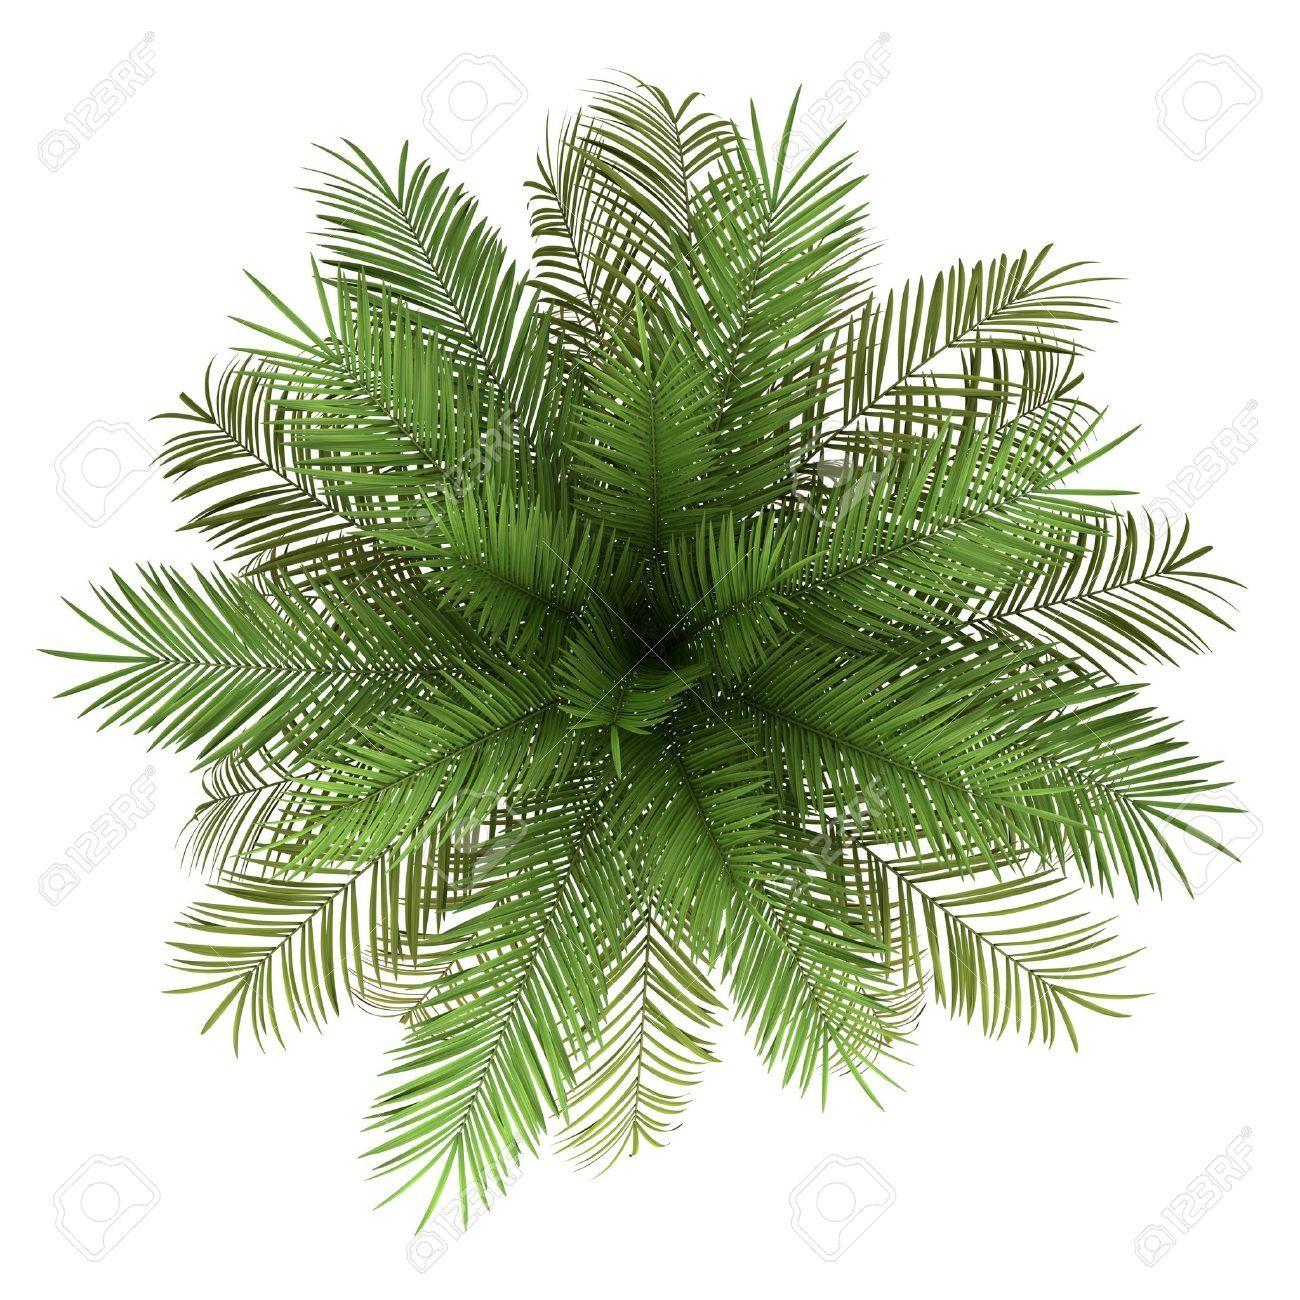 Image Result For Palm Tree Plan View Watercolor Tree Photoshop Trees Top View Cool Plants